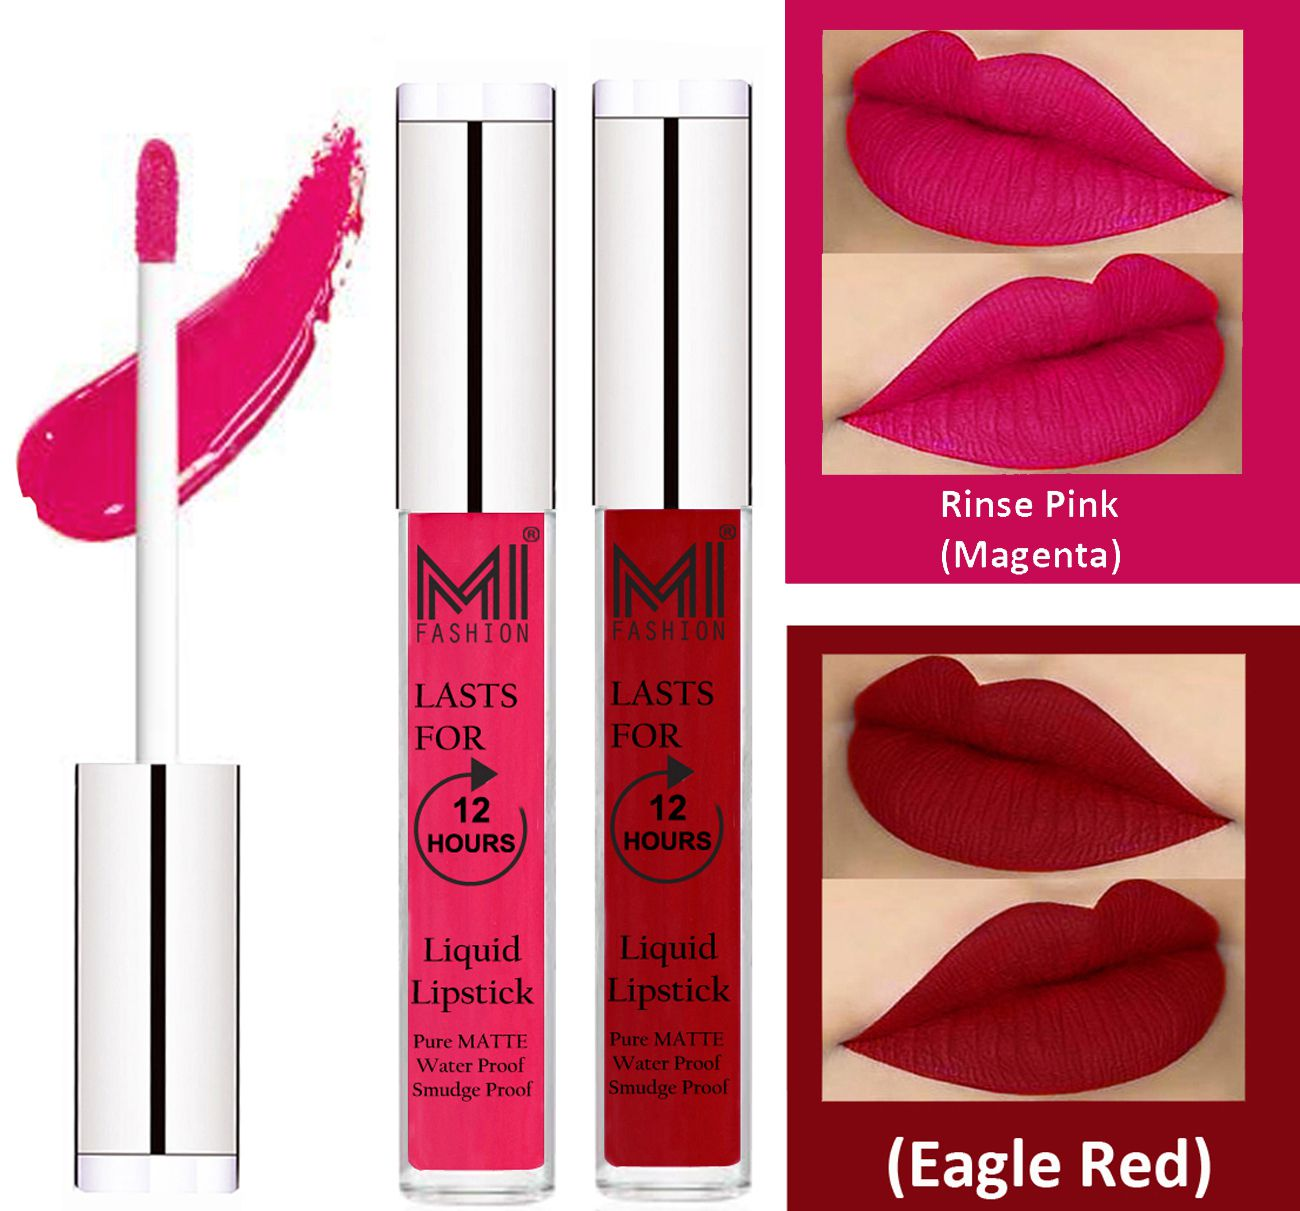 MI FASHION Liquid Lipstick Magenta,Eagle Red Pack of 2